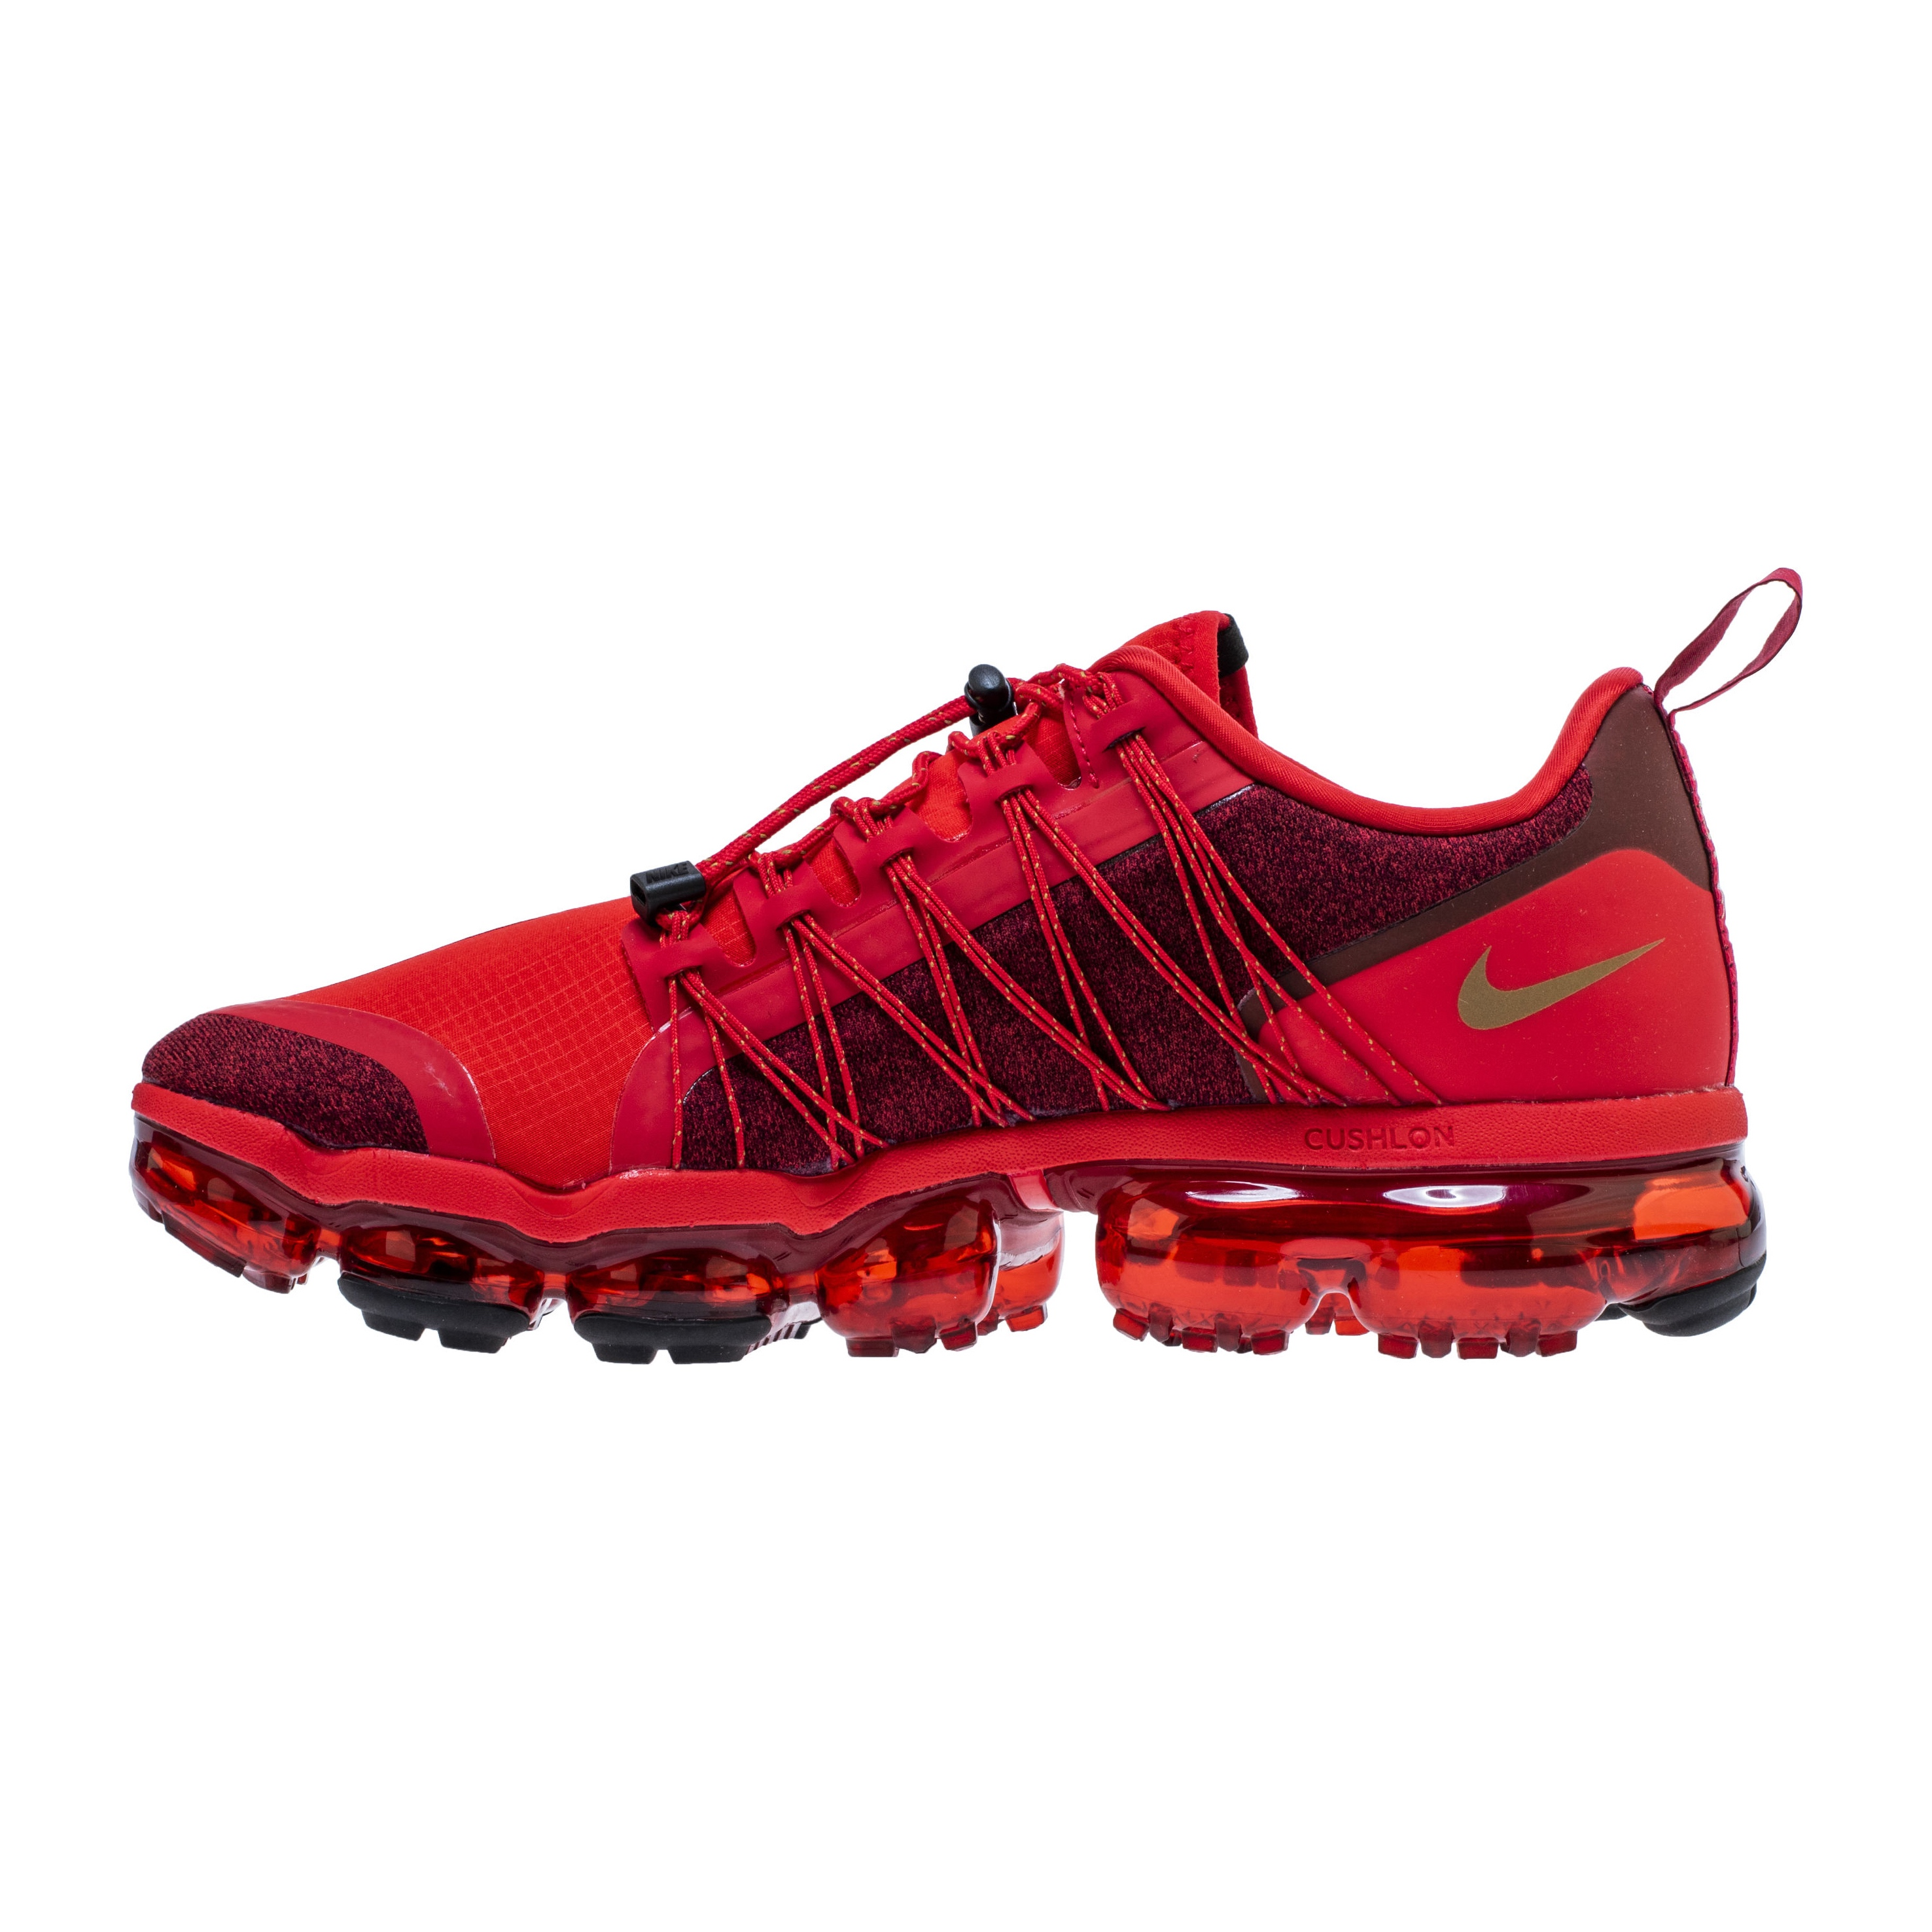 88380cf625f NIKE AIR VAPORMAX RUN UTILITY CANYON RED BLACK 4 - WearTesters